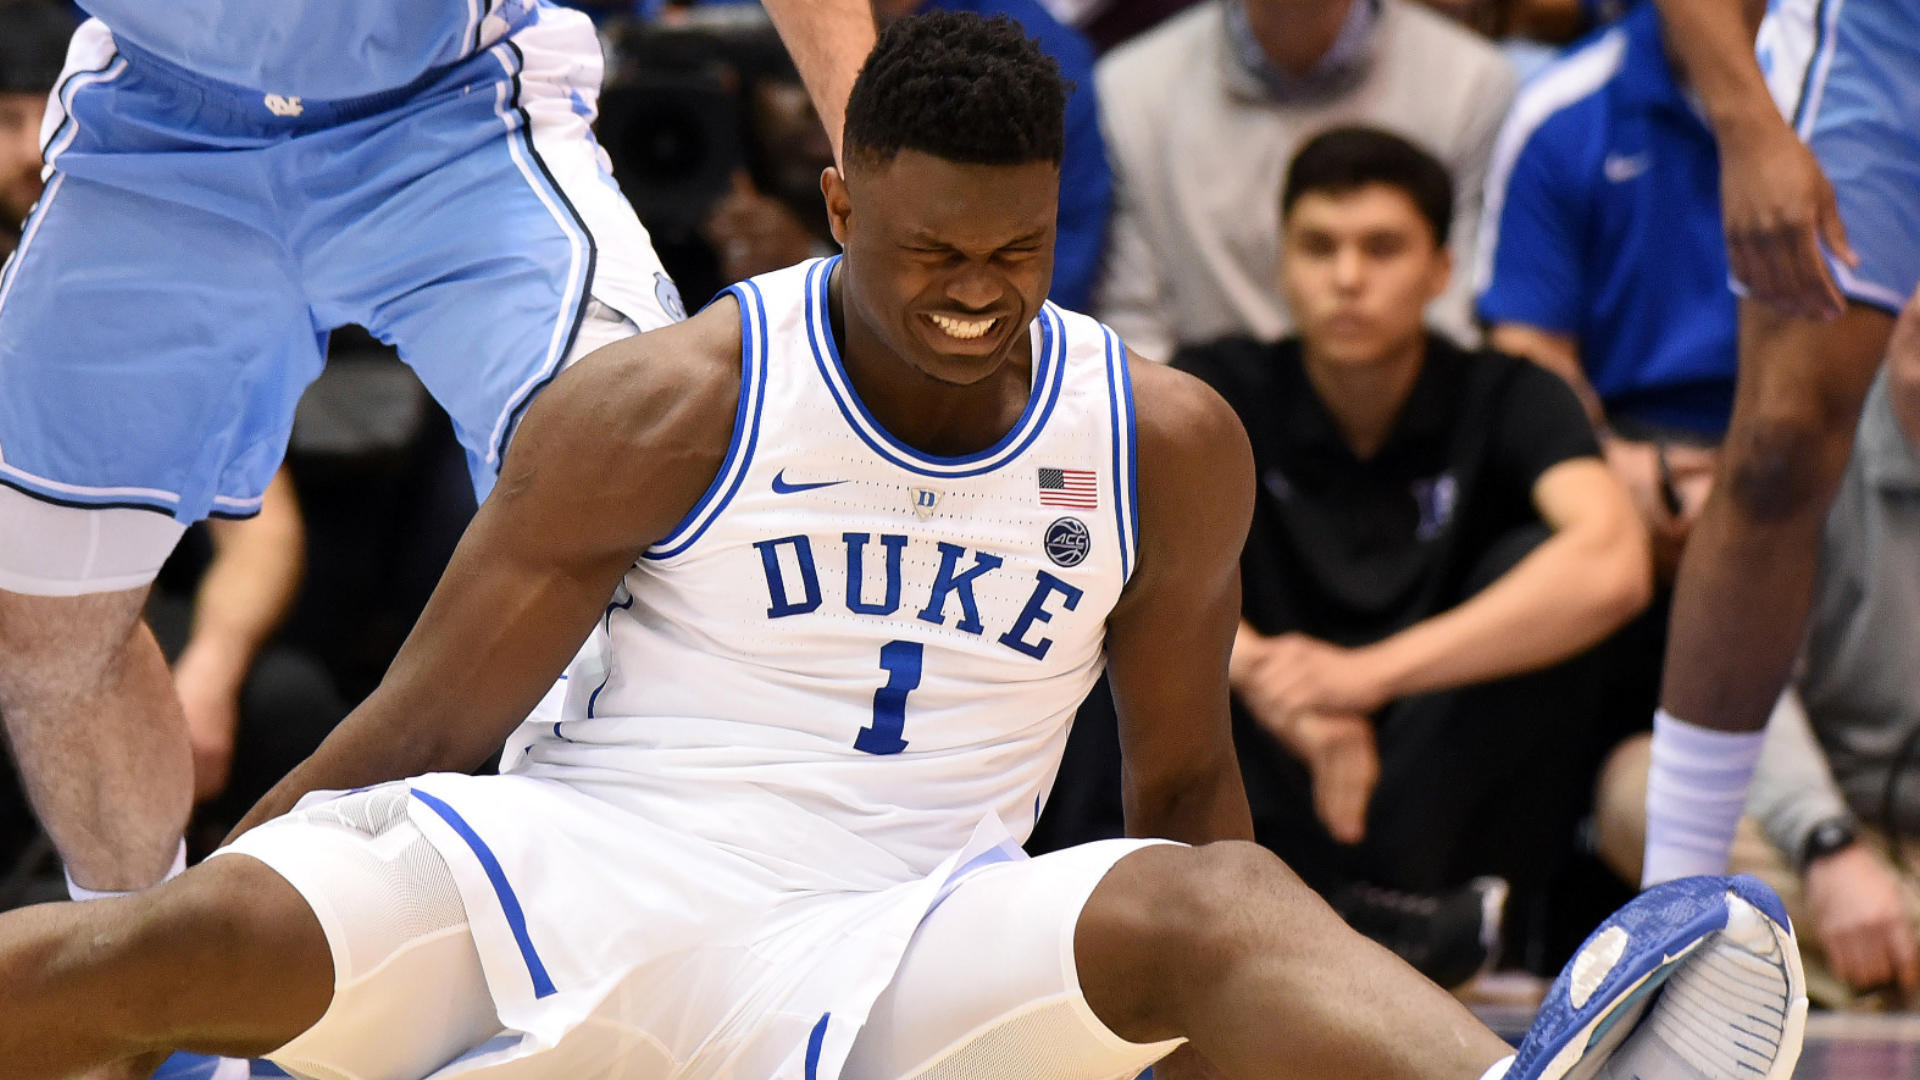 Zion Williamson injury: Nike issues statement after Duke freshman blows out shoe, sprains knee vs. UNC